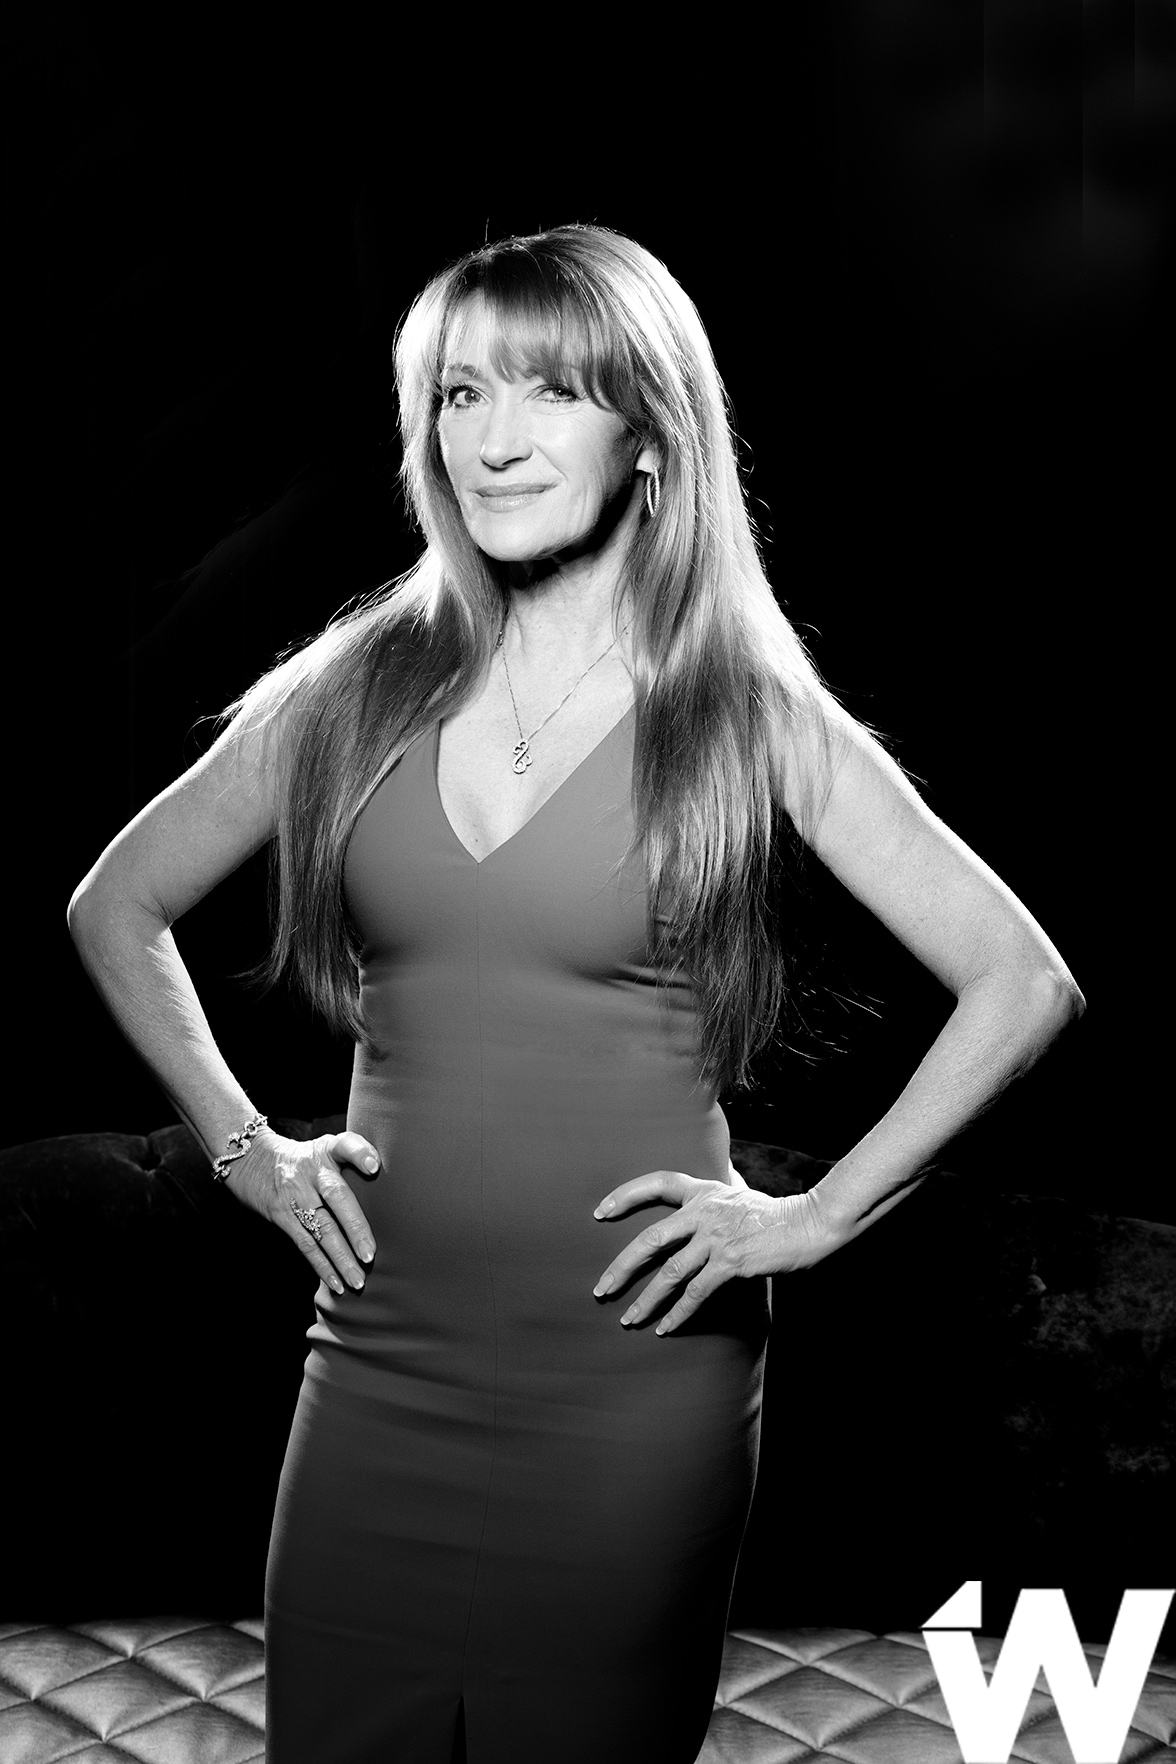 Jane Seymour, actress